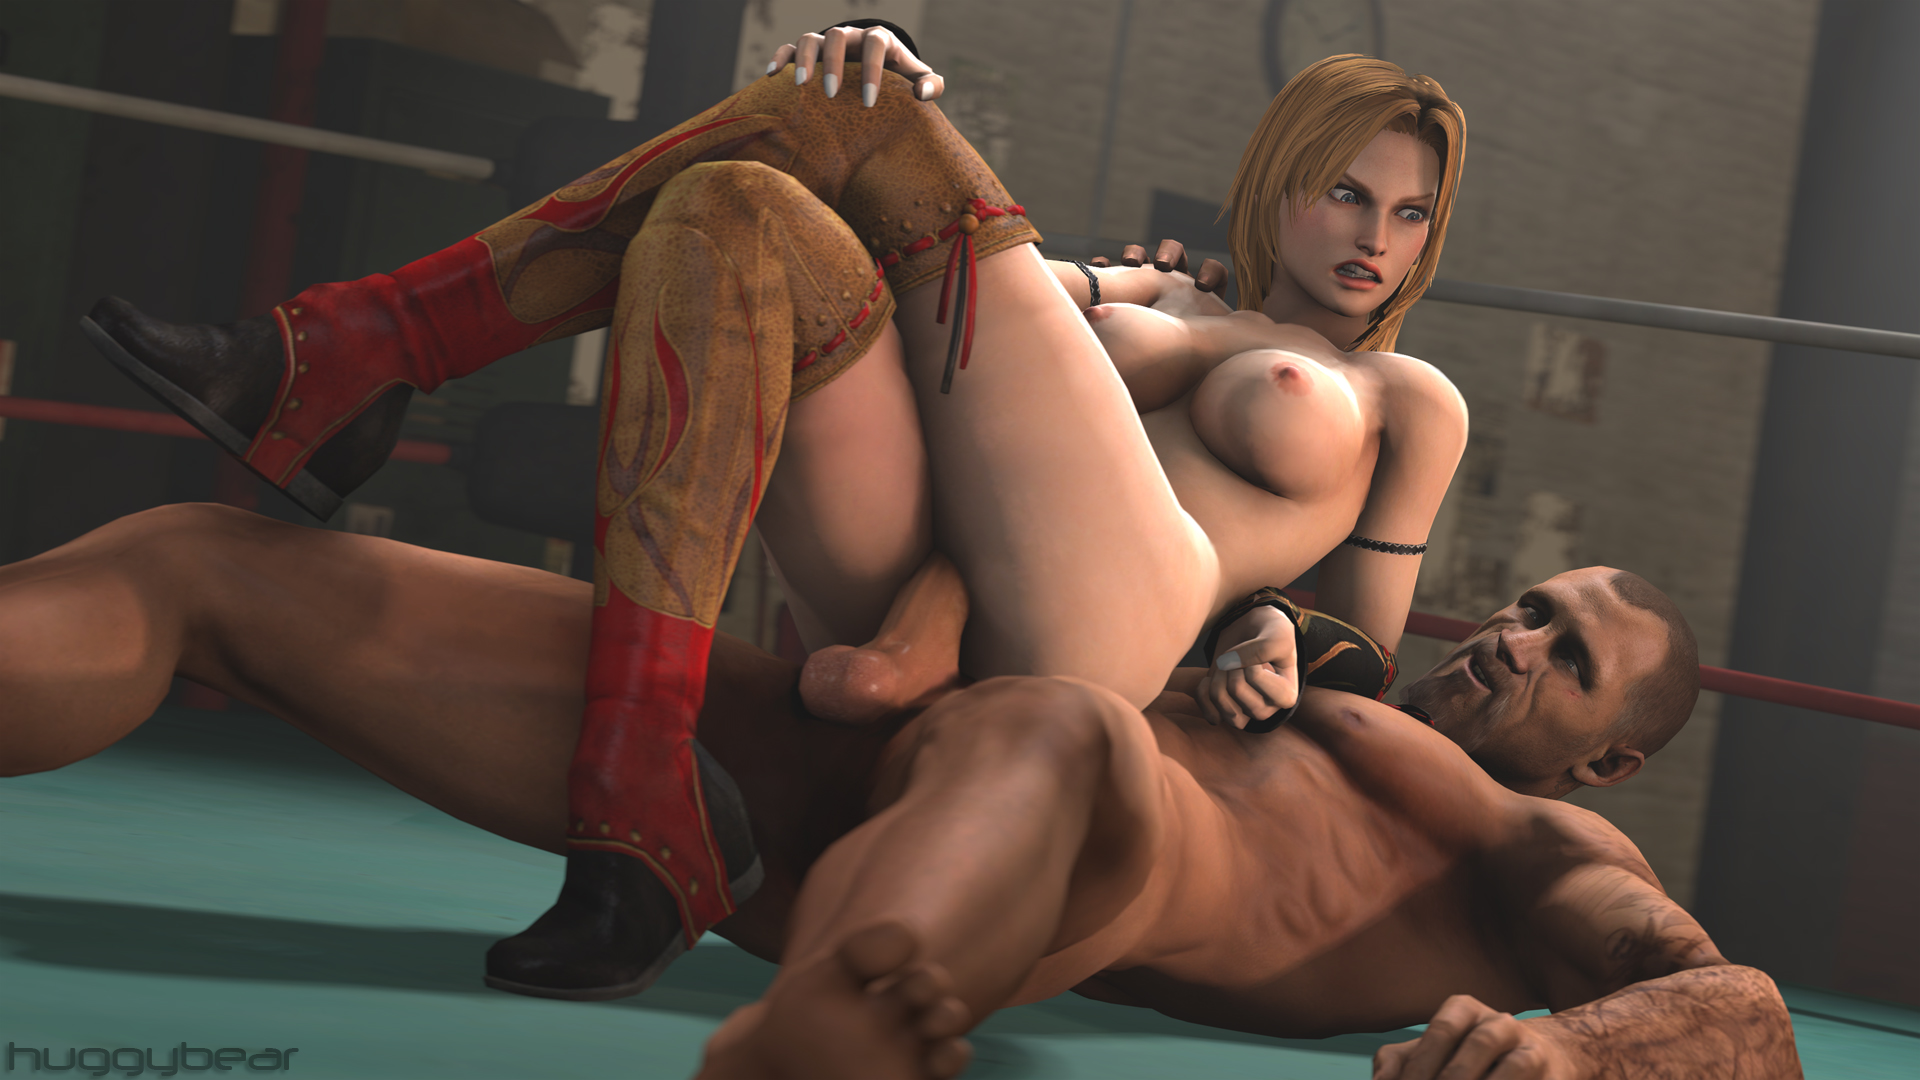 Left4dead 3d game porn exposed gallery